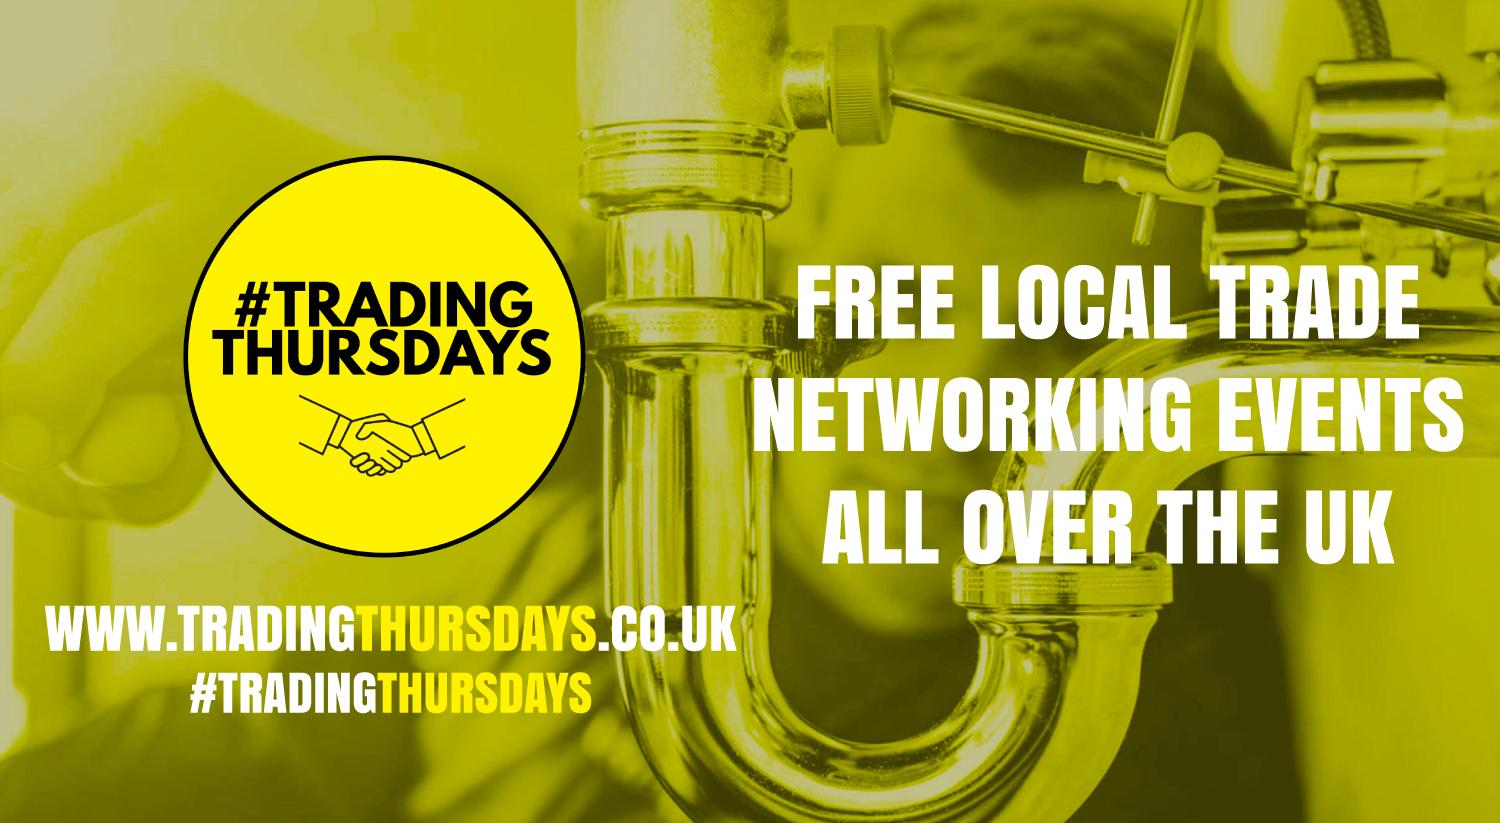 Trading Thursdays! Free networking event for traders in West Bromwich